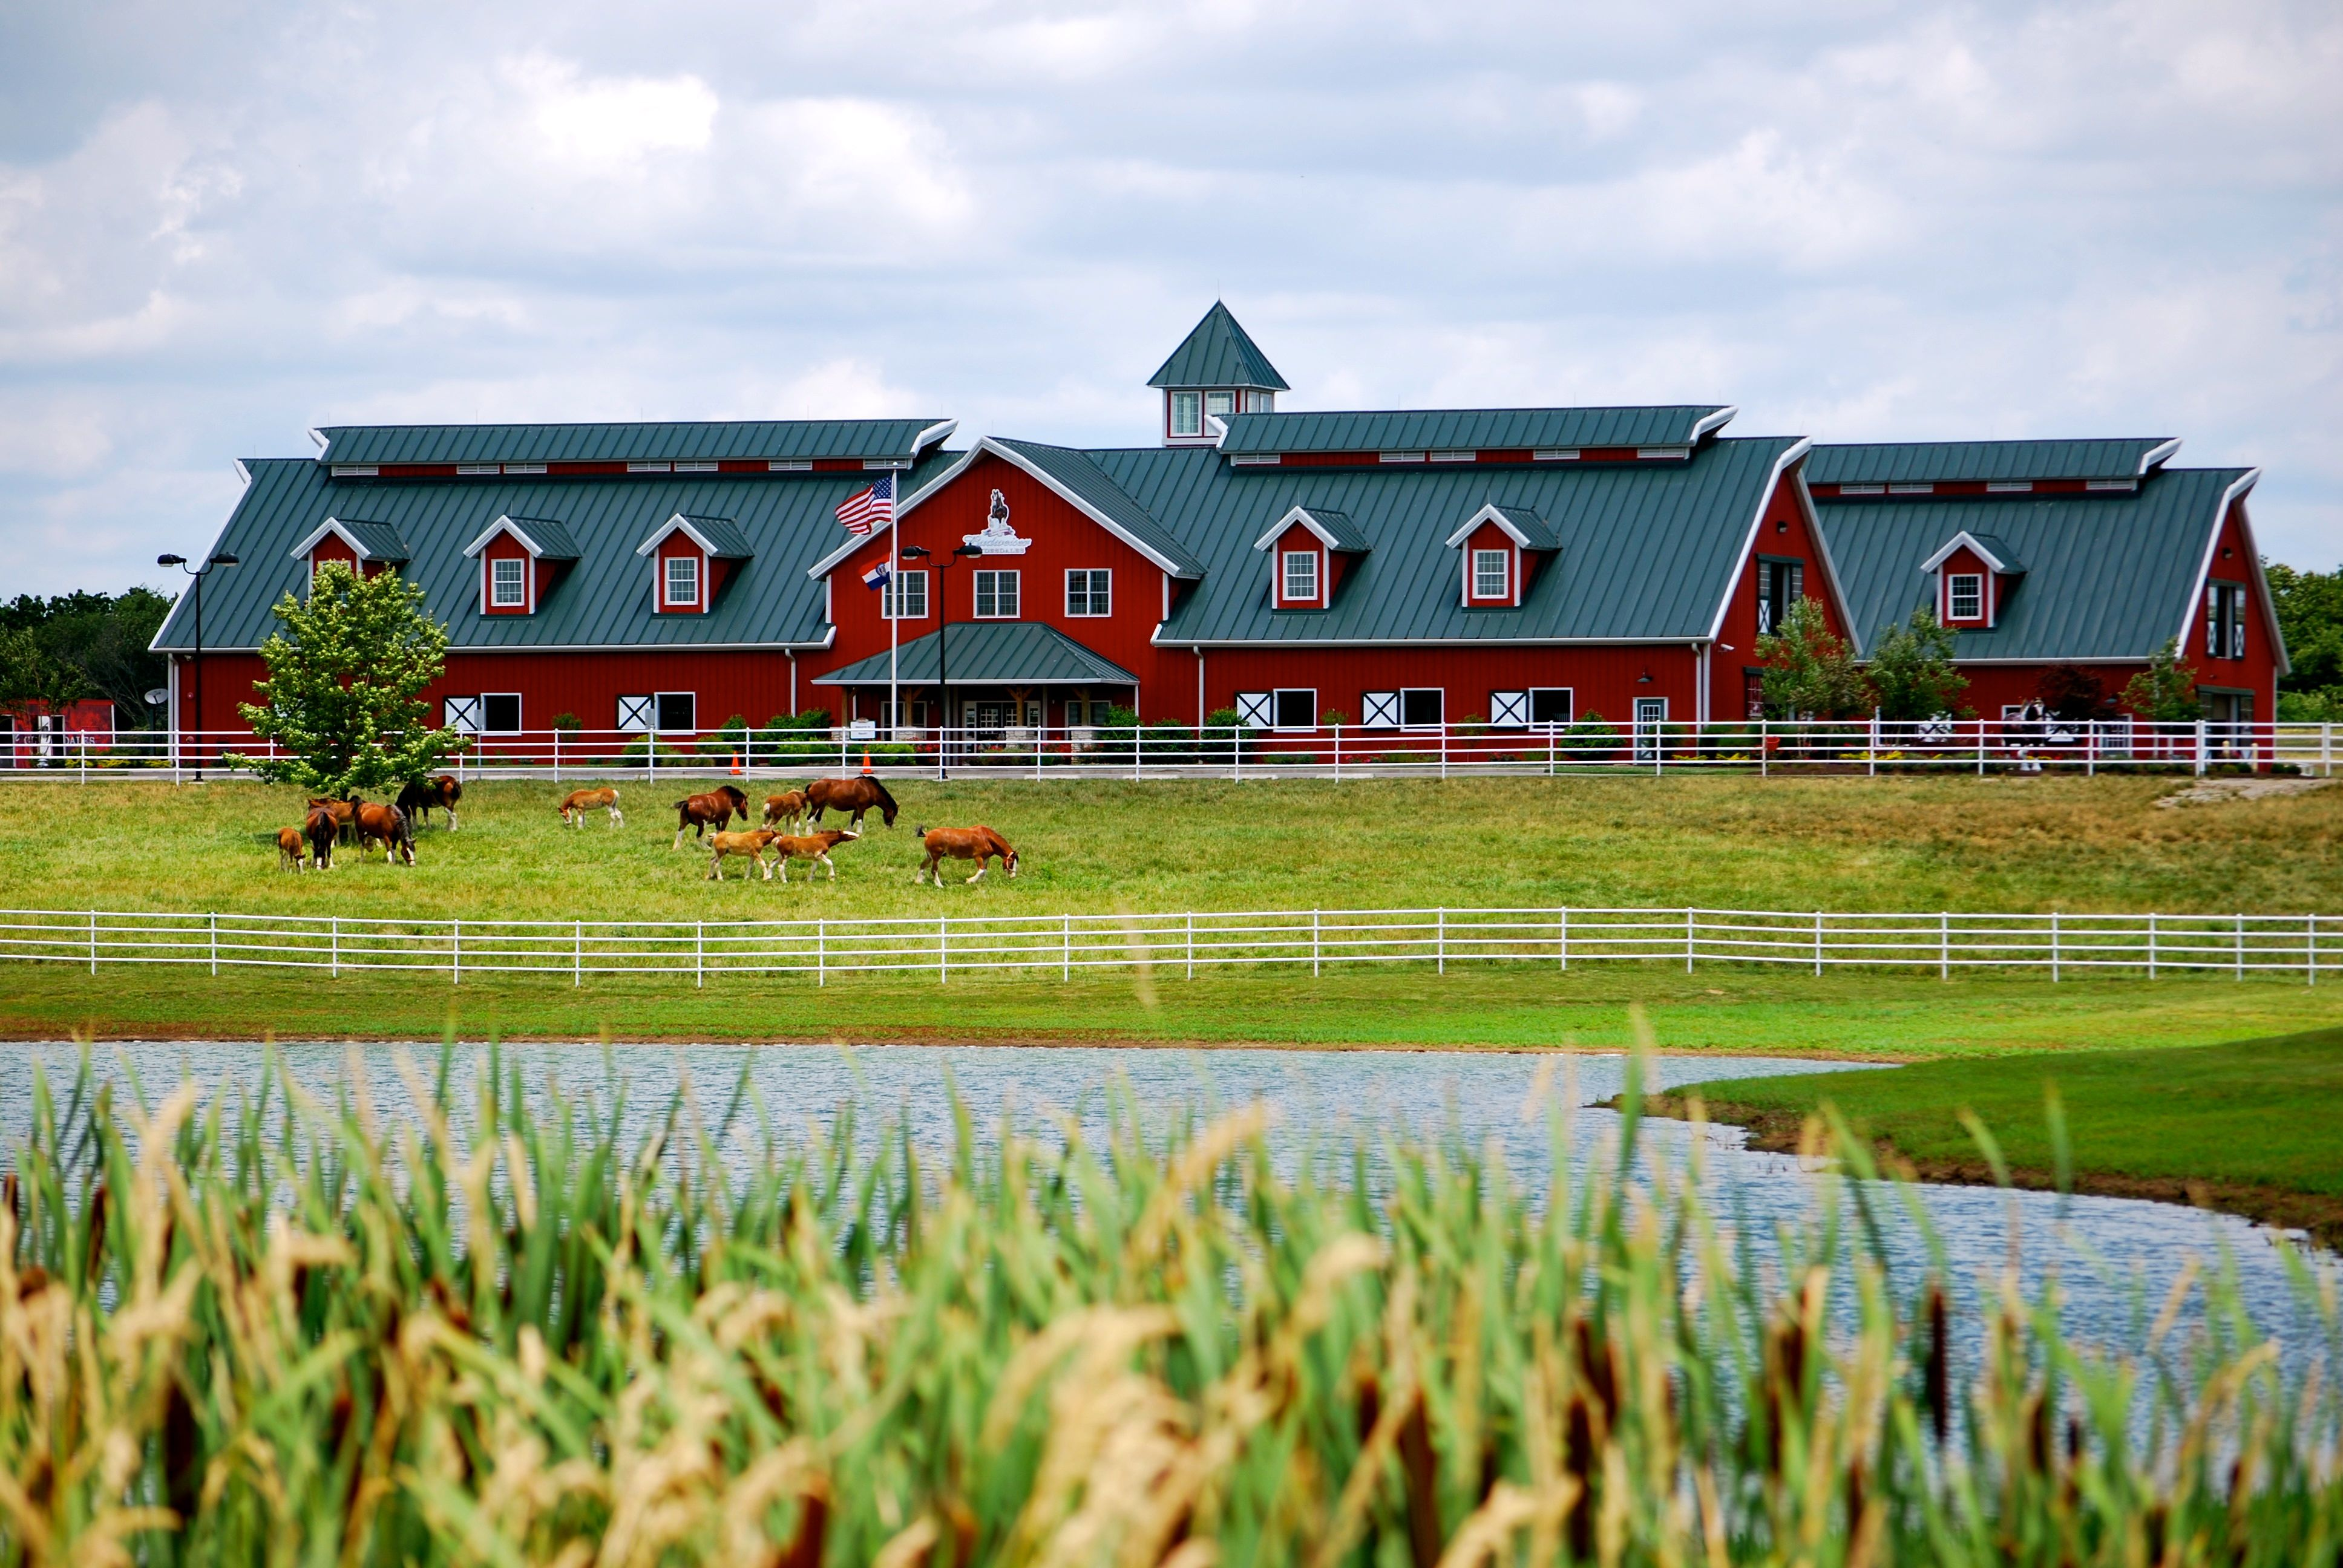 Budweiser Clydesdales barn at Warm Spring